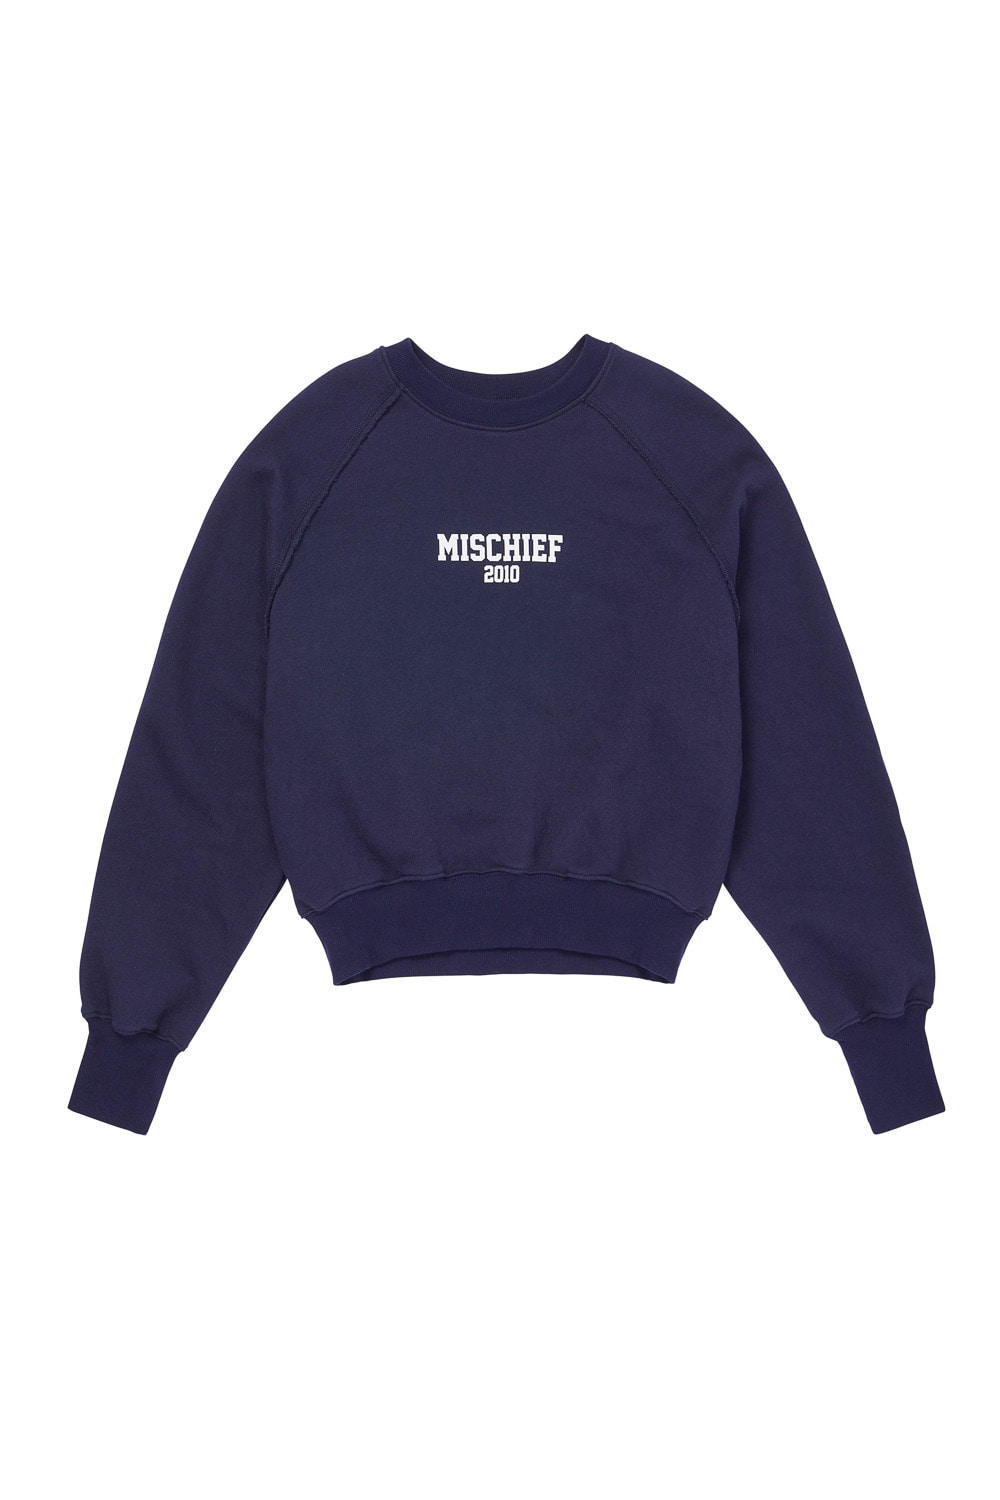 MSCHF 2010 CROPPED CREWNECK_navy